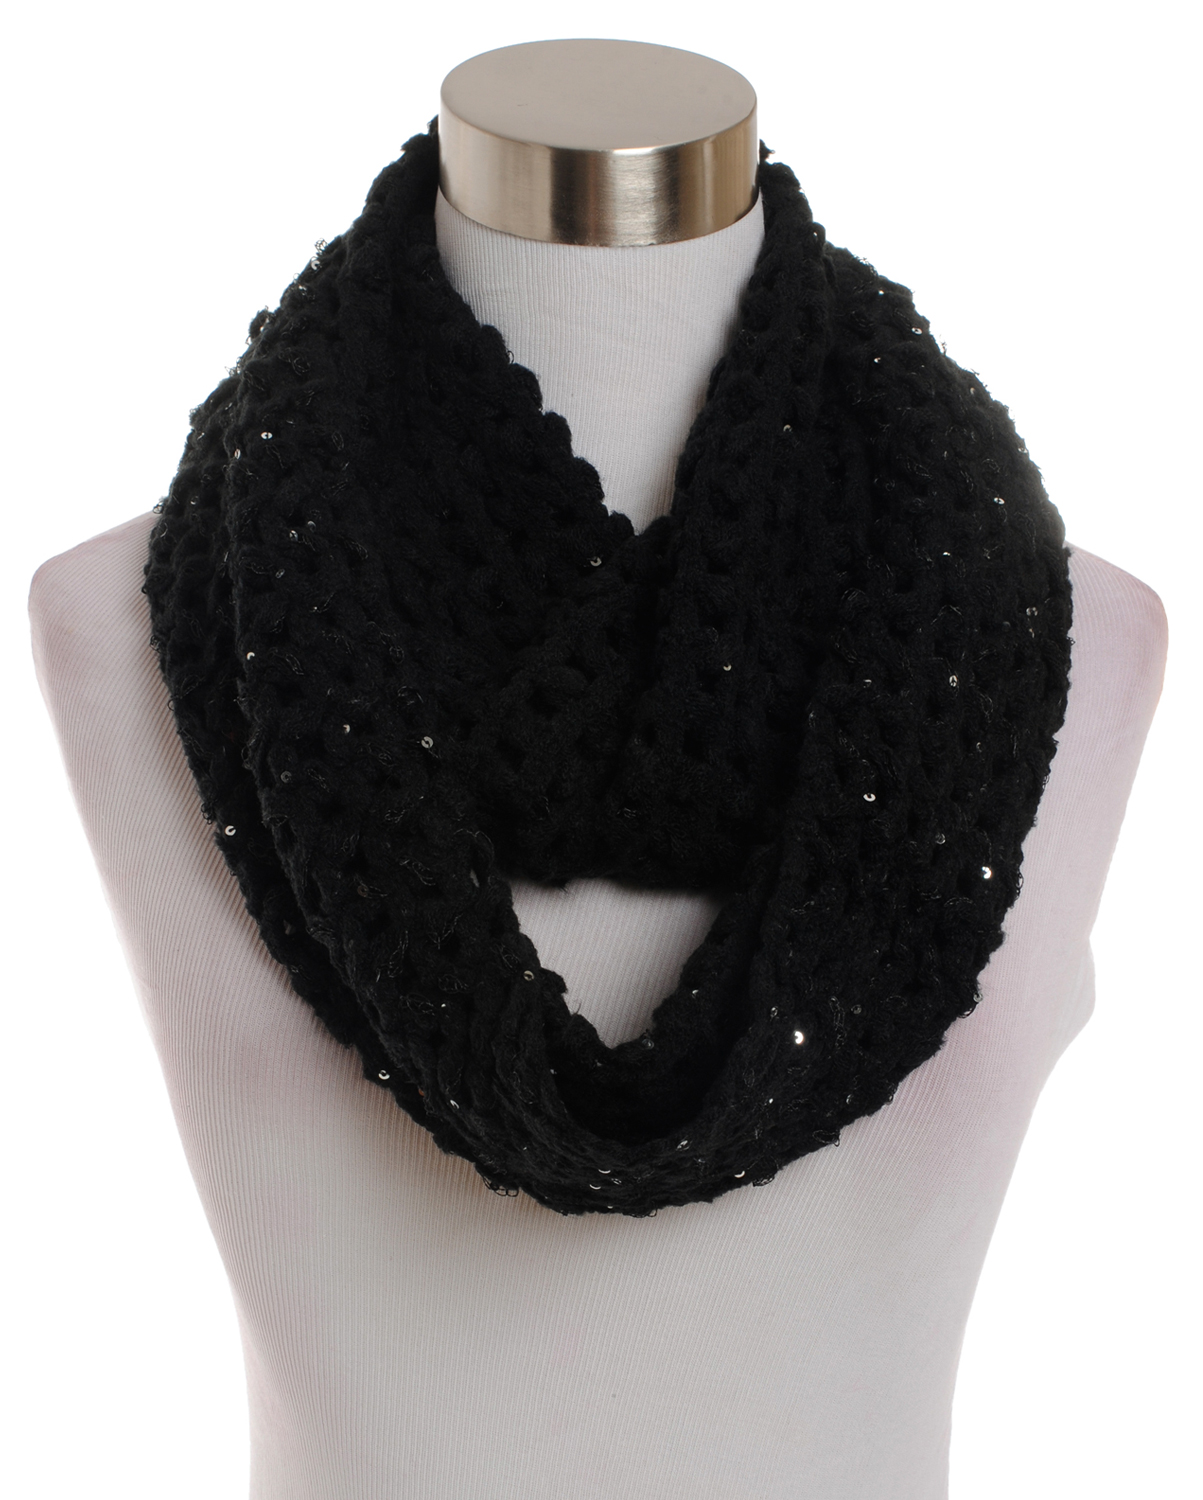 AO554(BK)-wholesale-infinity-scarf-sequin-lurex-solid-color-knitted-woven-versatile-acrylic(0).jpg